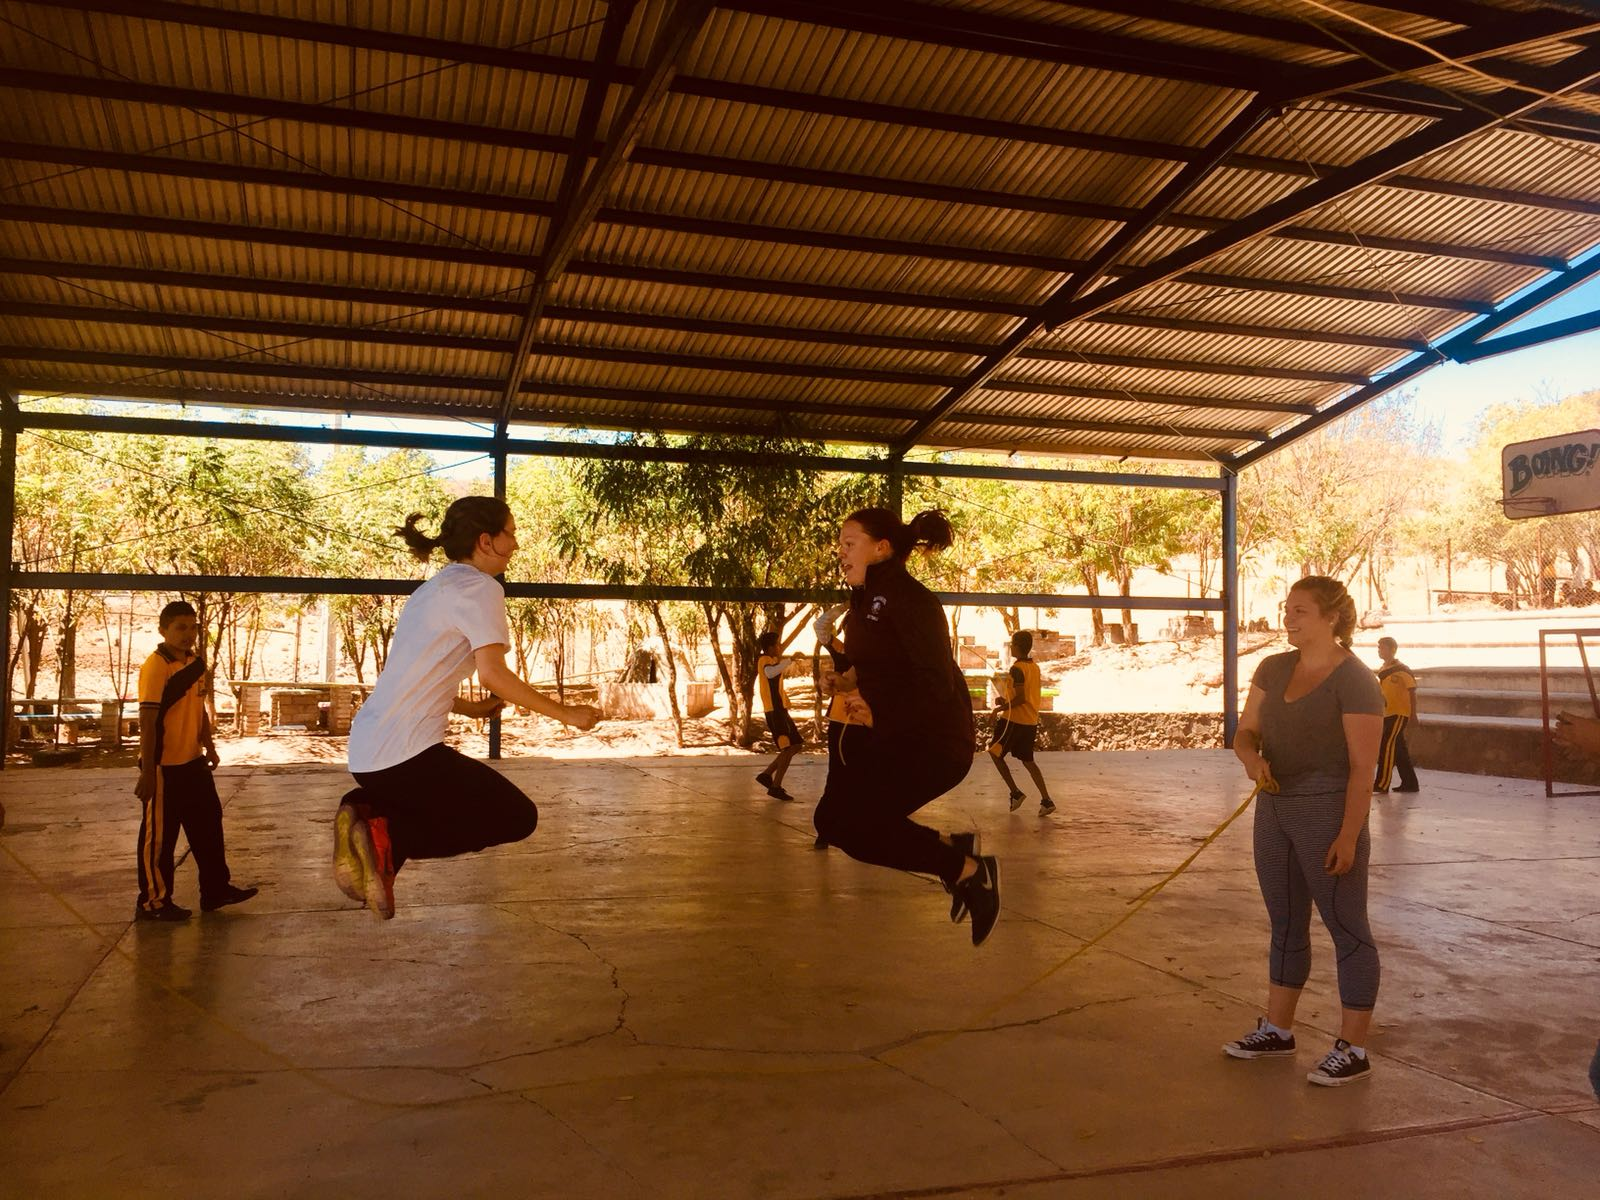 Two CEMAL students are jumping rope with high school students in Ixtlilco